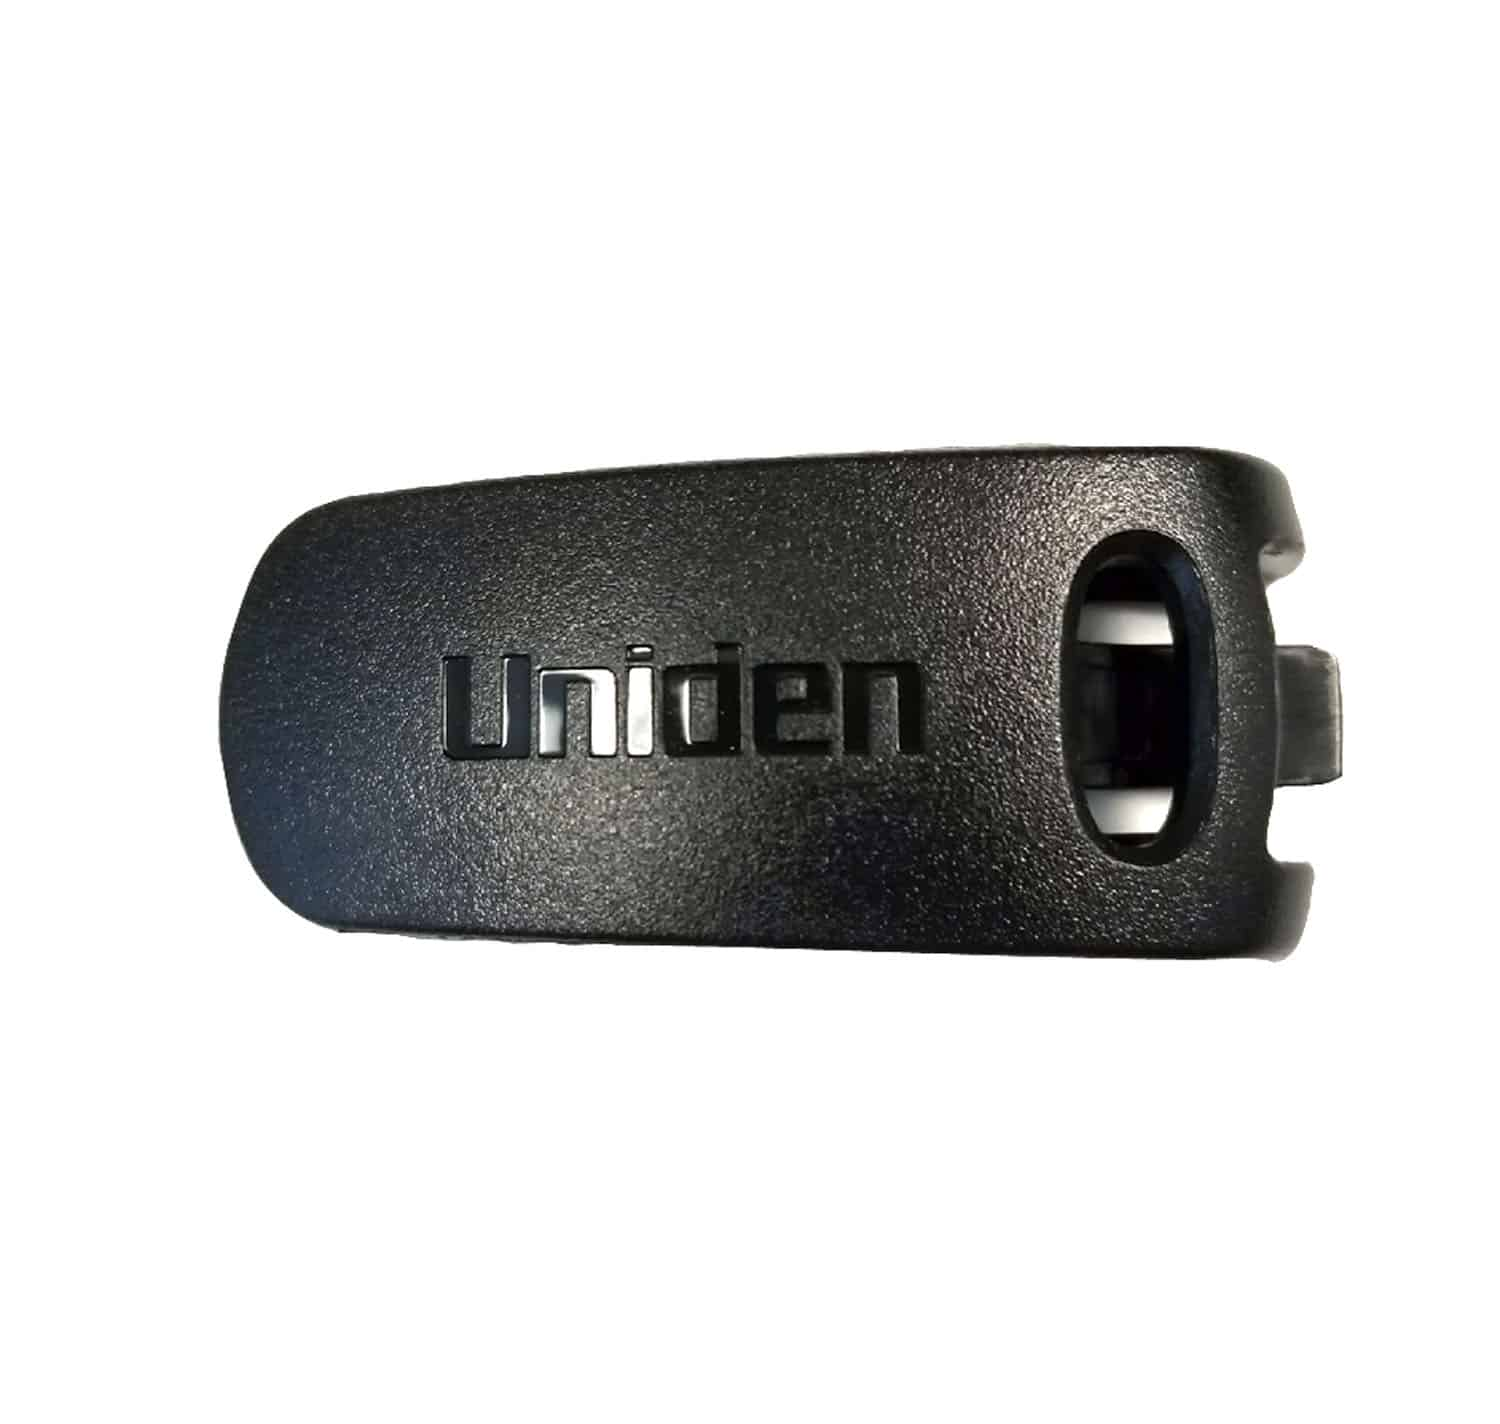 GBCT4E3473Z - Uniden Replacement Belt Clip for Atlantis 270